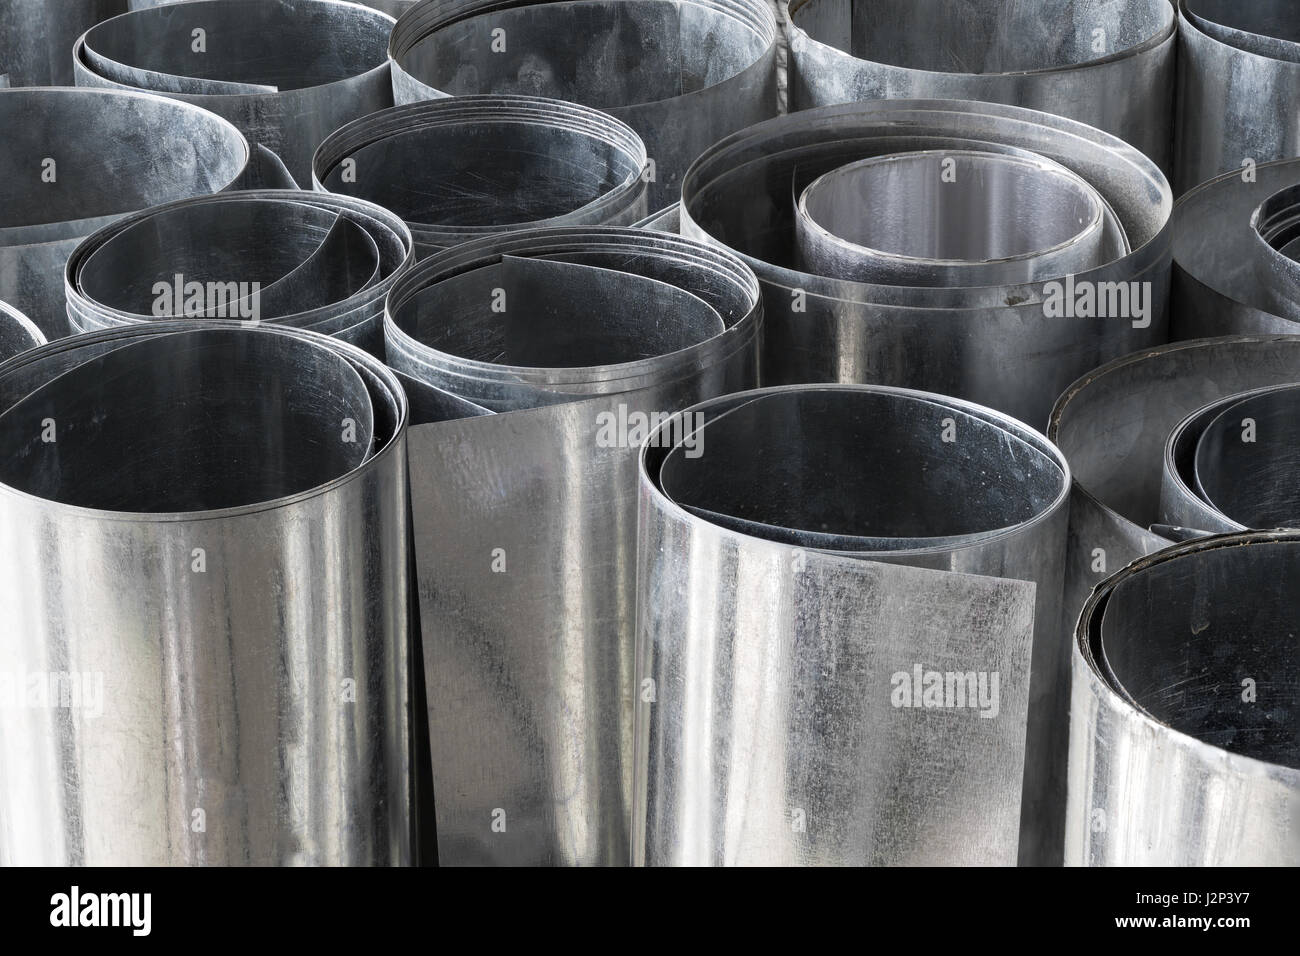 Rolls of flat galvanized metal sheets, building material - Stock Image